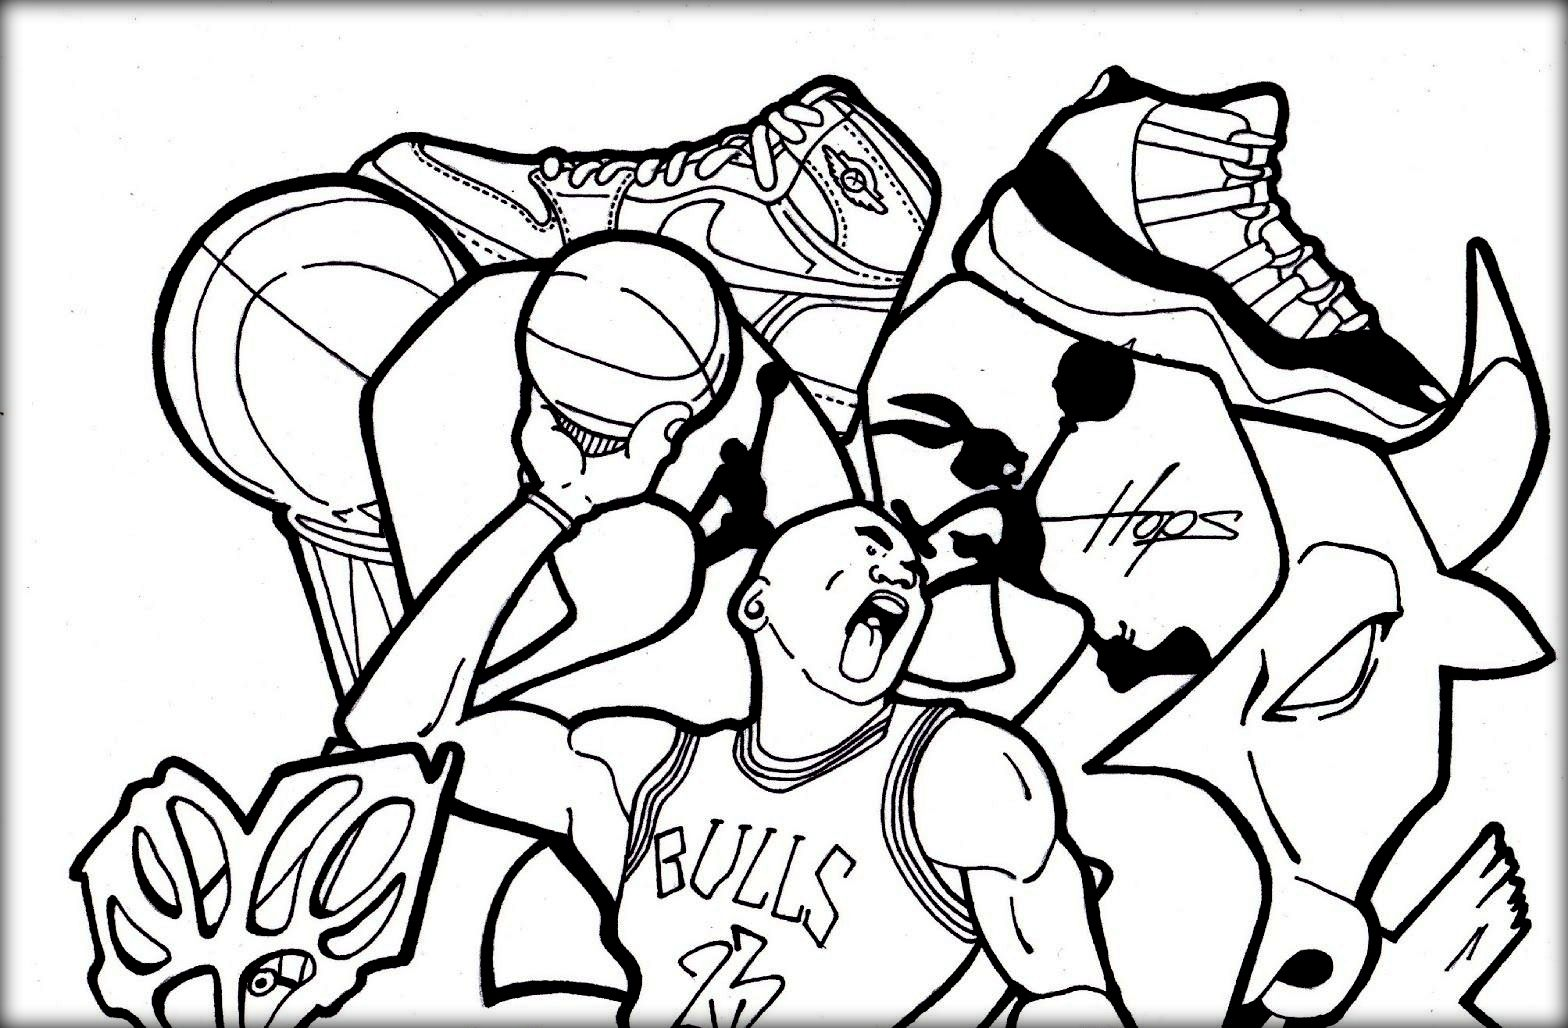 Coloring Pages Of Jordan Shoes - Coloring Kids